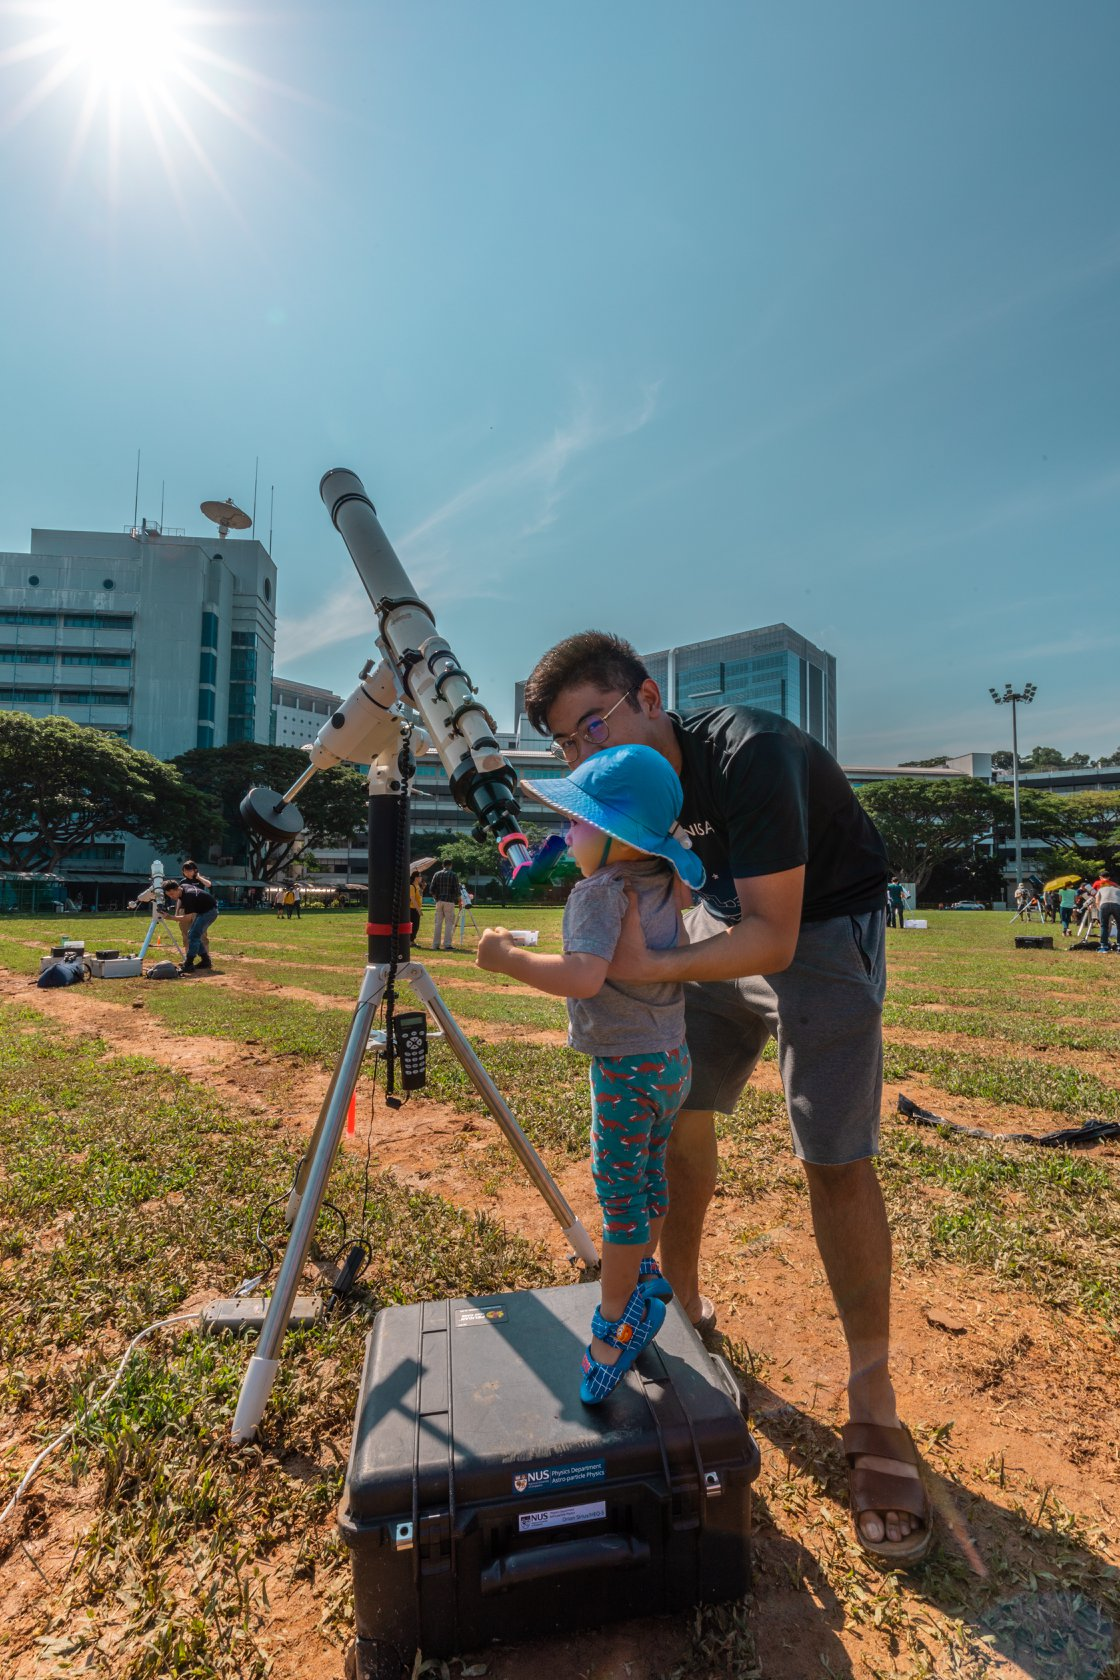 NUS School of Computing undergrad and NUS Astronomical Society President Brian Arcillas showing a young visitor how to view the sun through a telescope. Photo courtesy: NUS